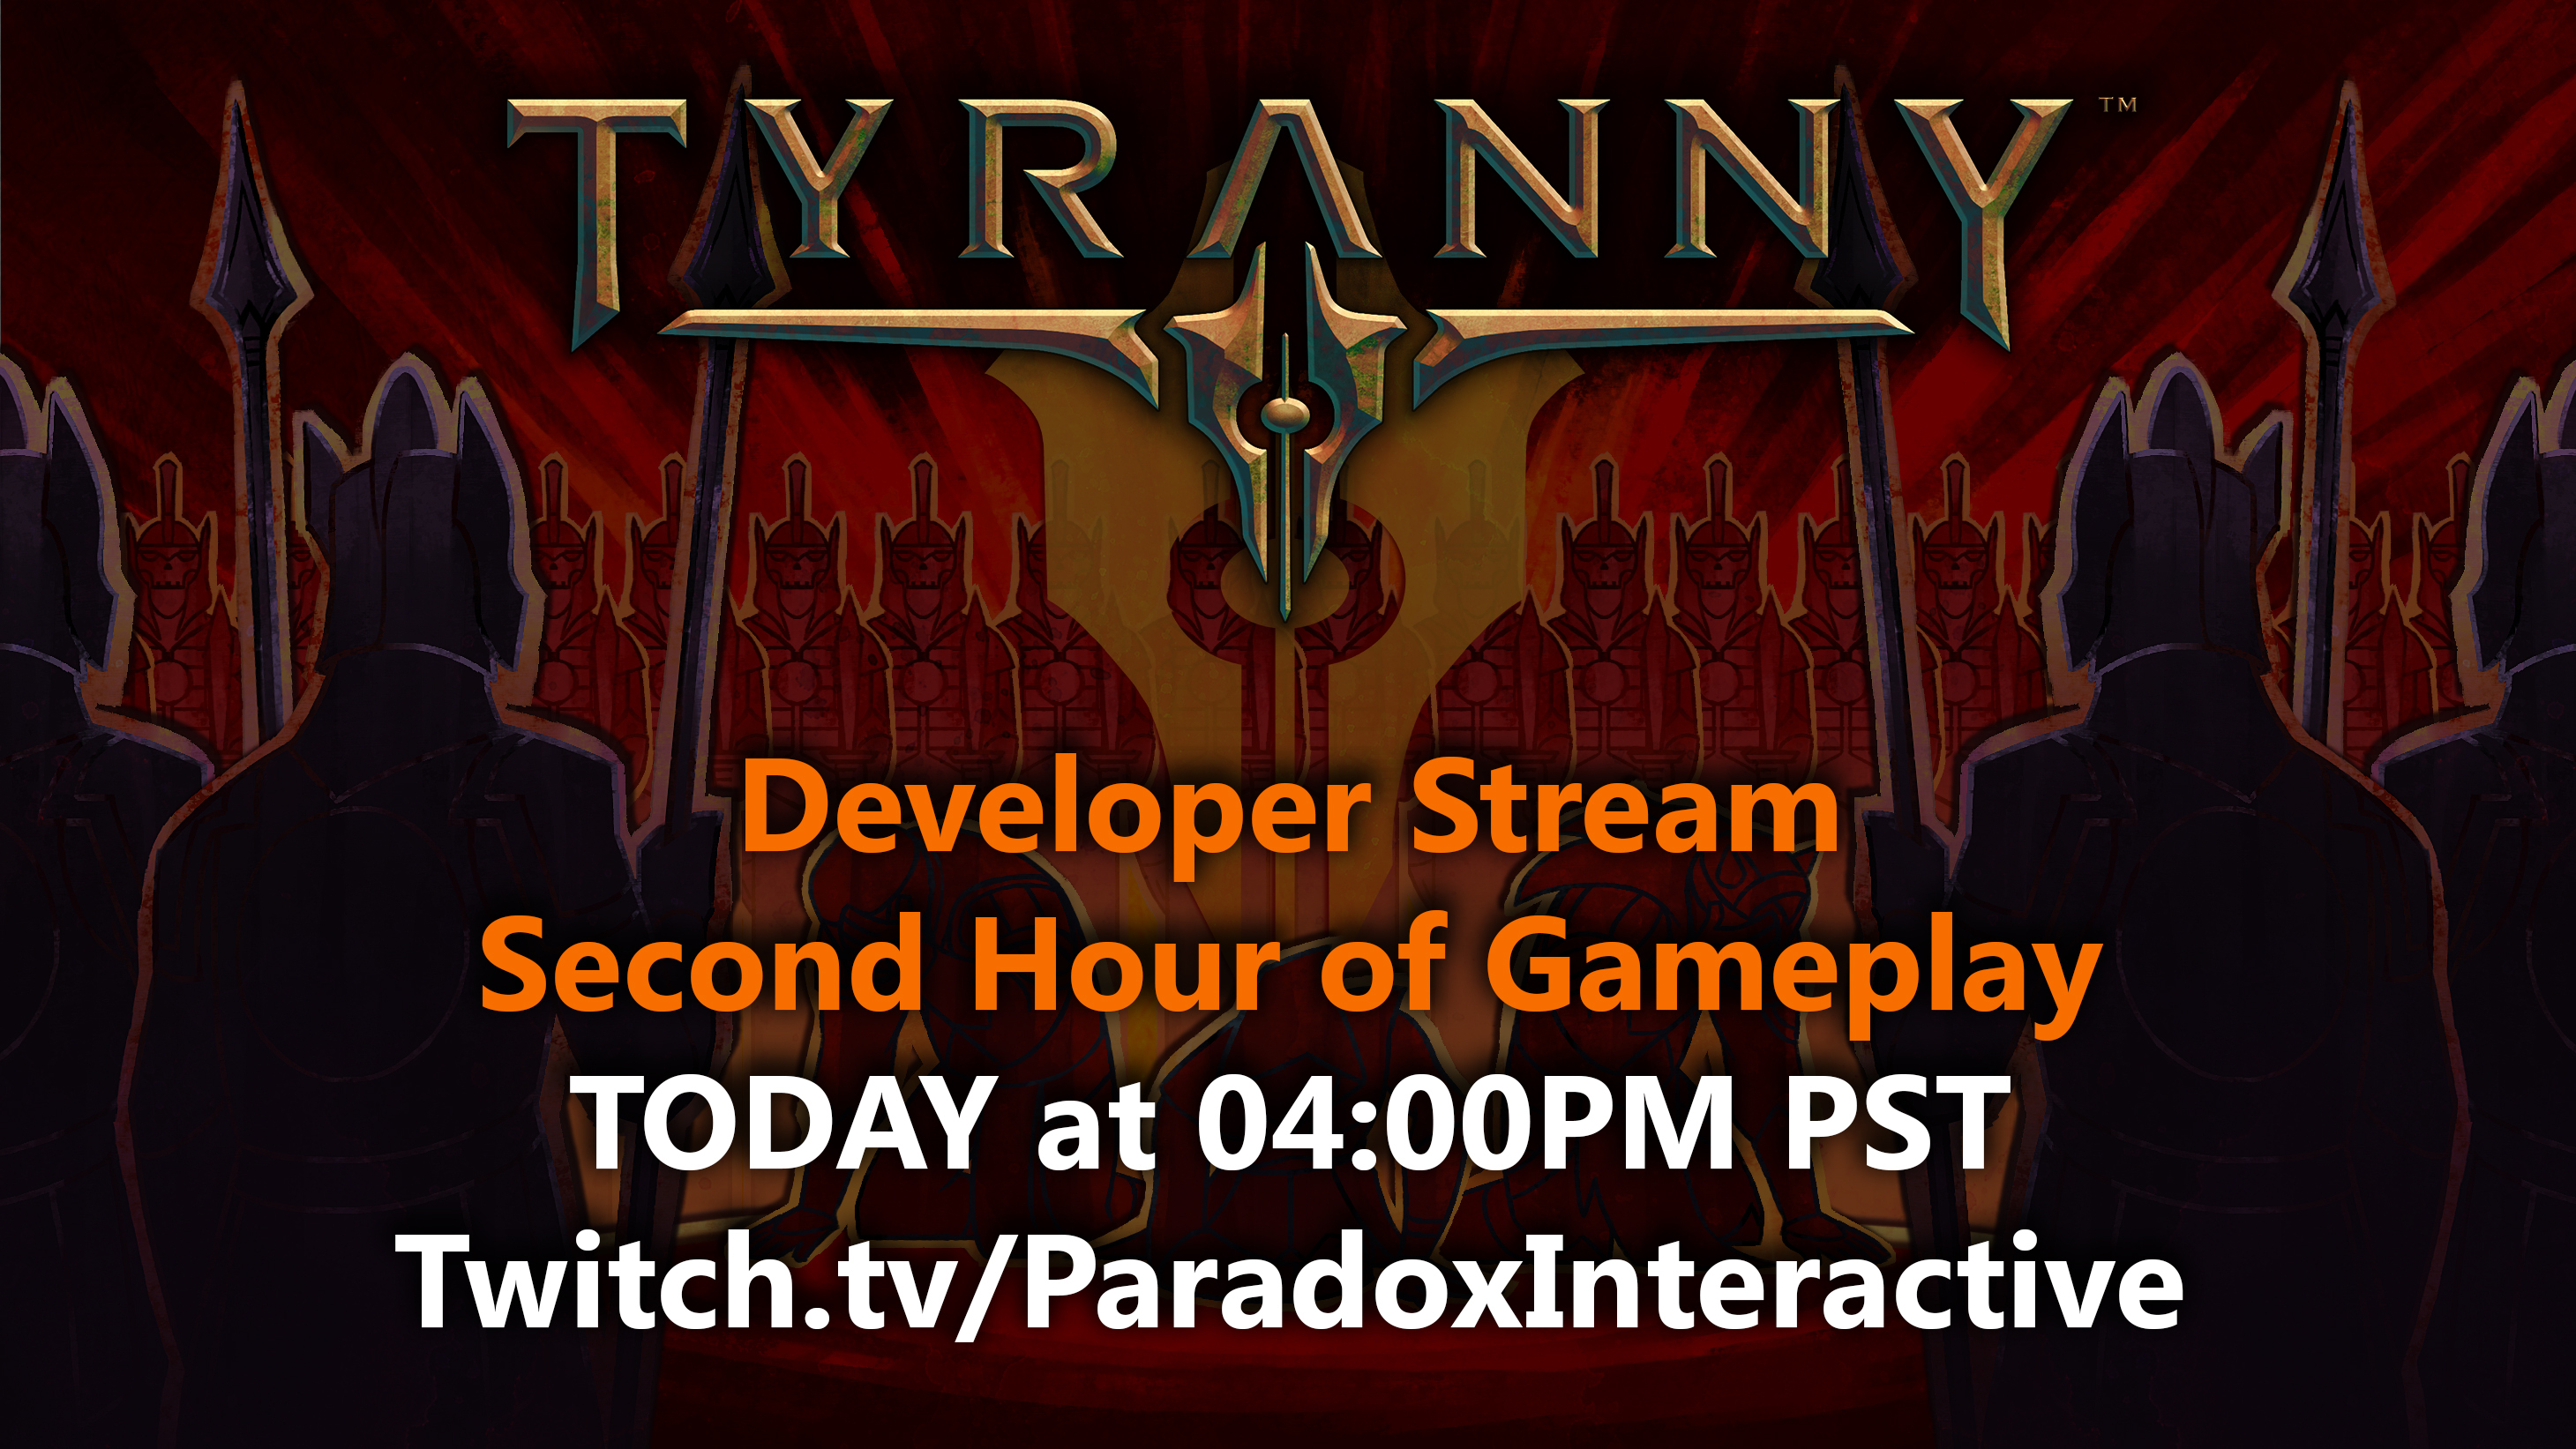 4Pm Cet To Pst nov 10, 2016 tyranny release stream today at 16:00cet